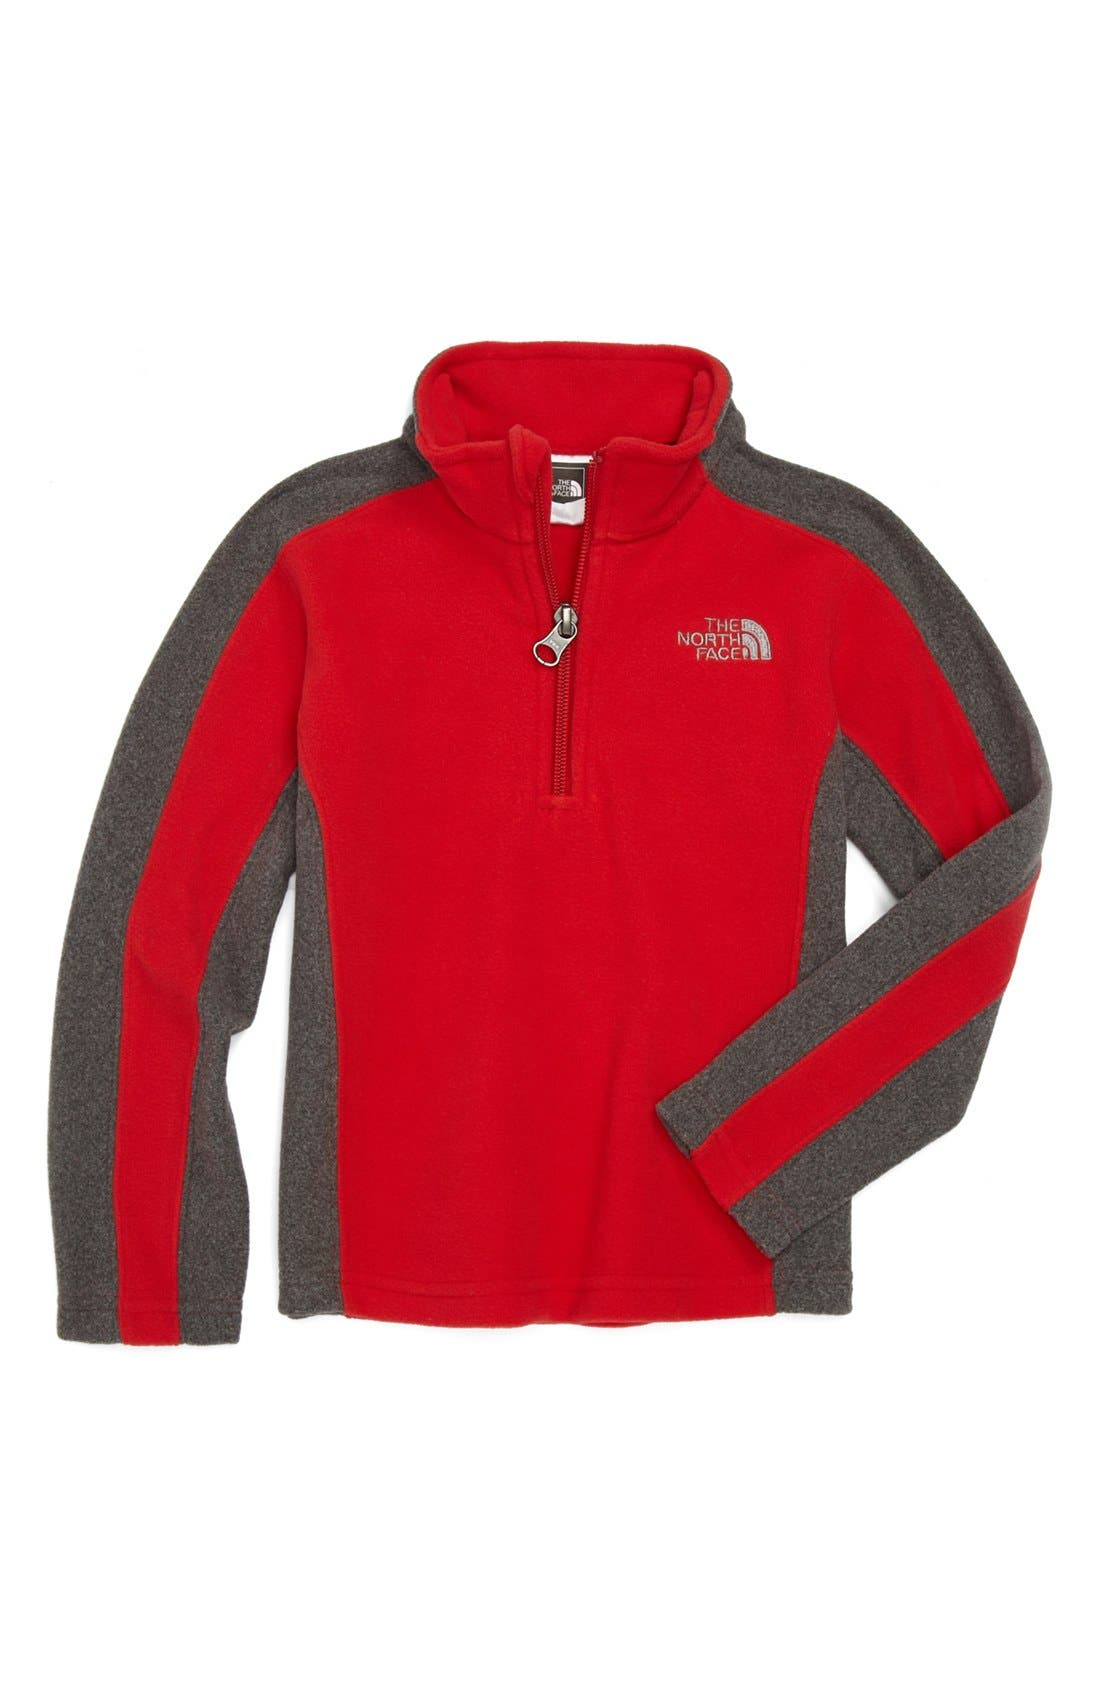 Alternate Image 1 Selected - The North Face 'Glacier' Quarter Zip Pullover (Toddler Boys)